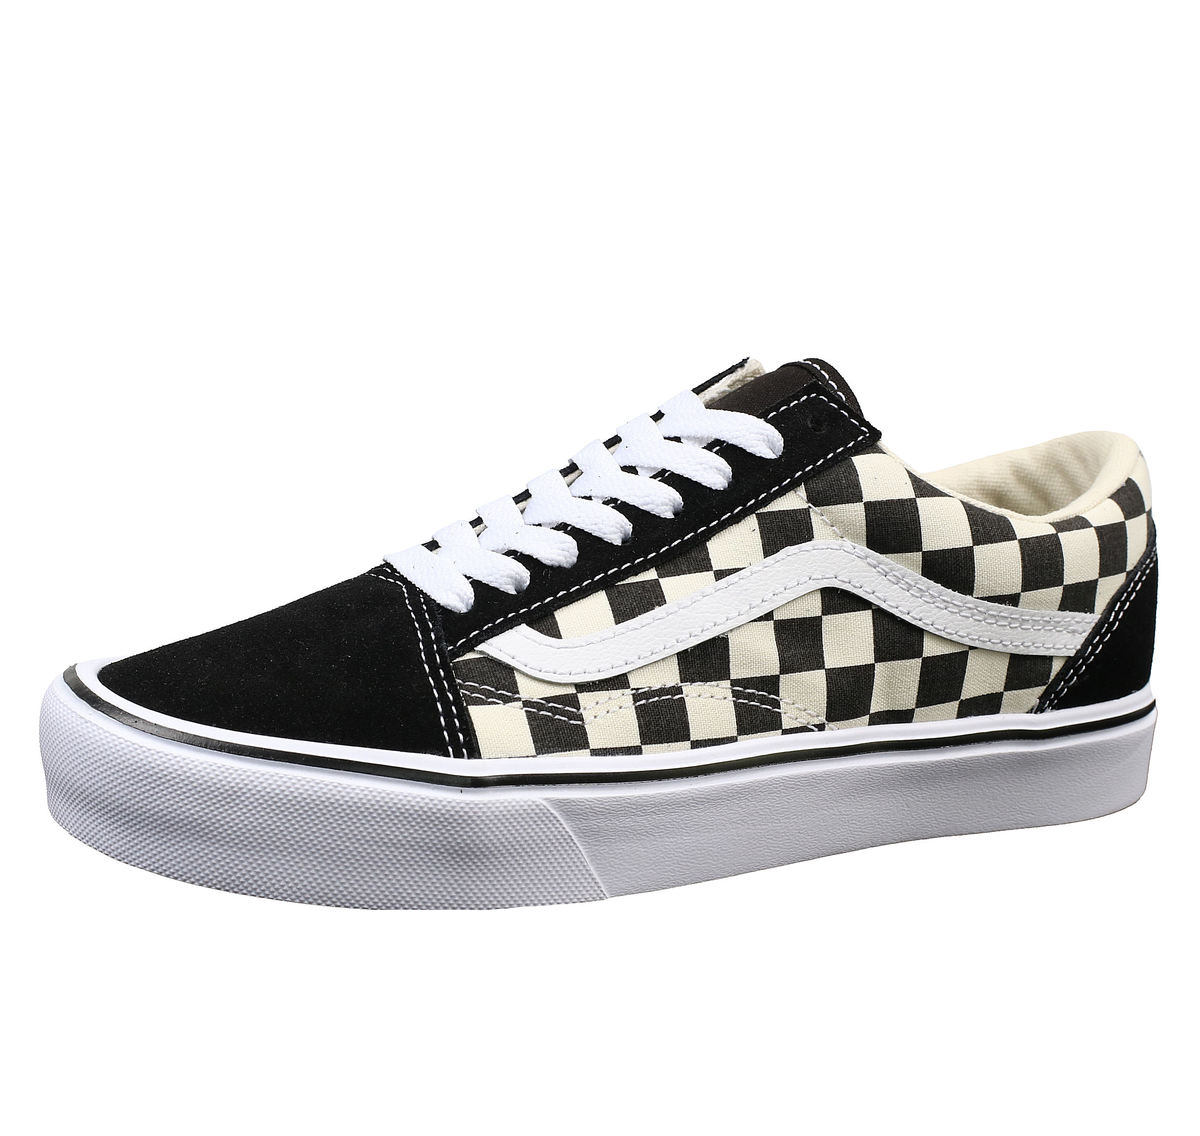 boty VANS - UA OLD SKOOL LITE (Checkerboard) - Black /White - VA2Z5W5GX